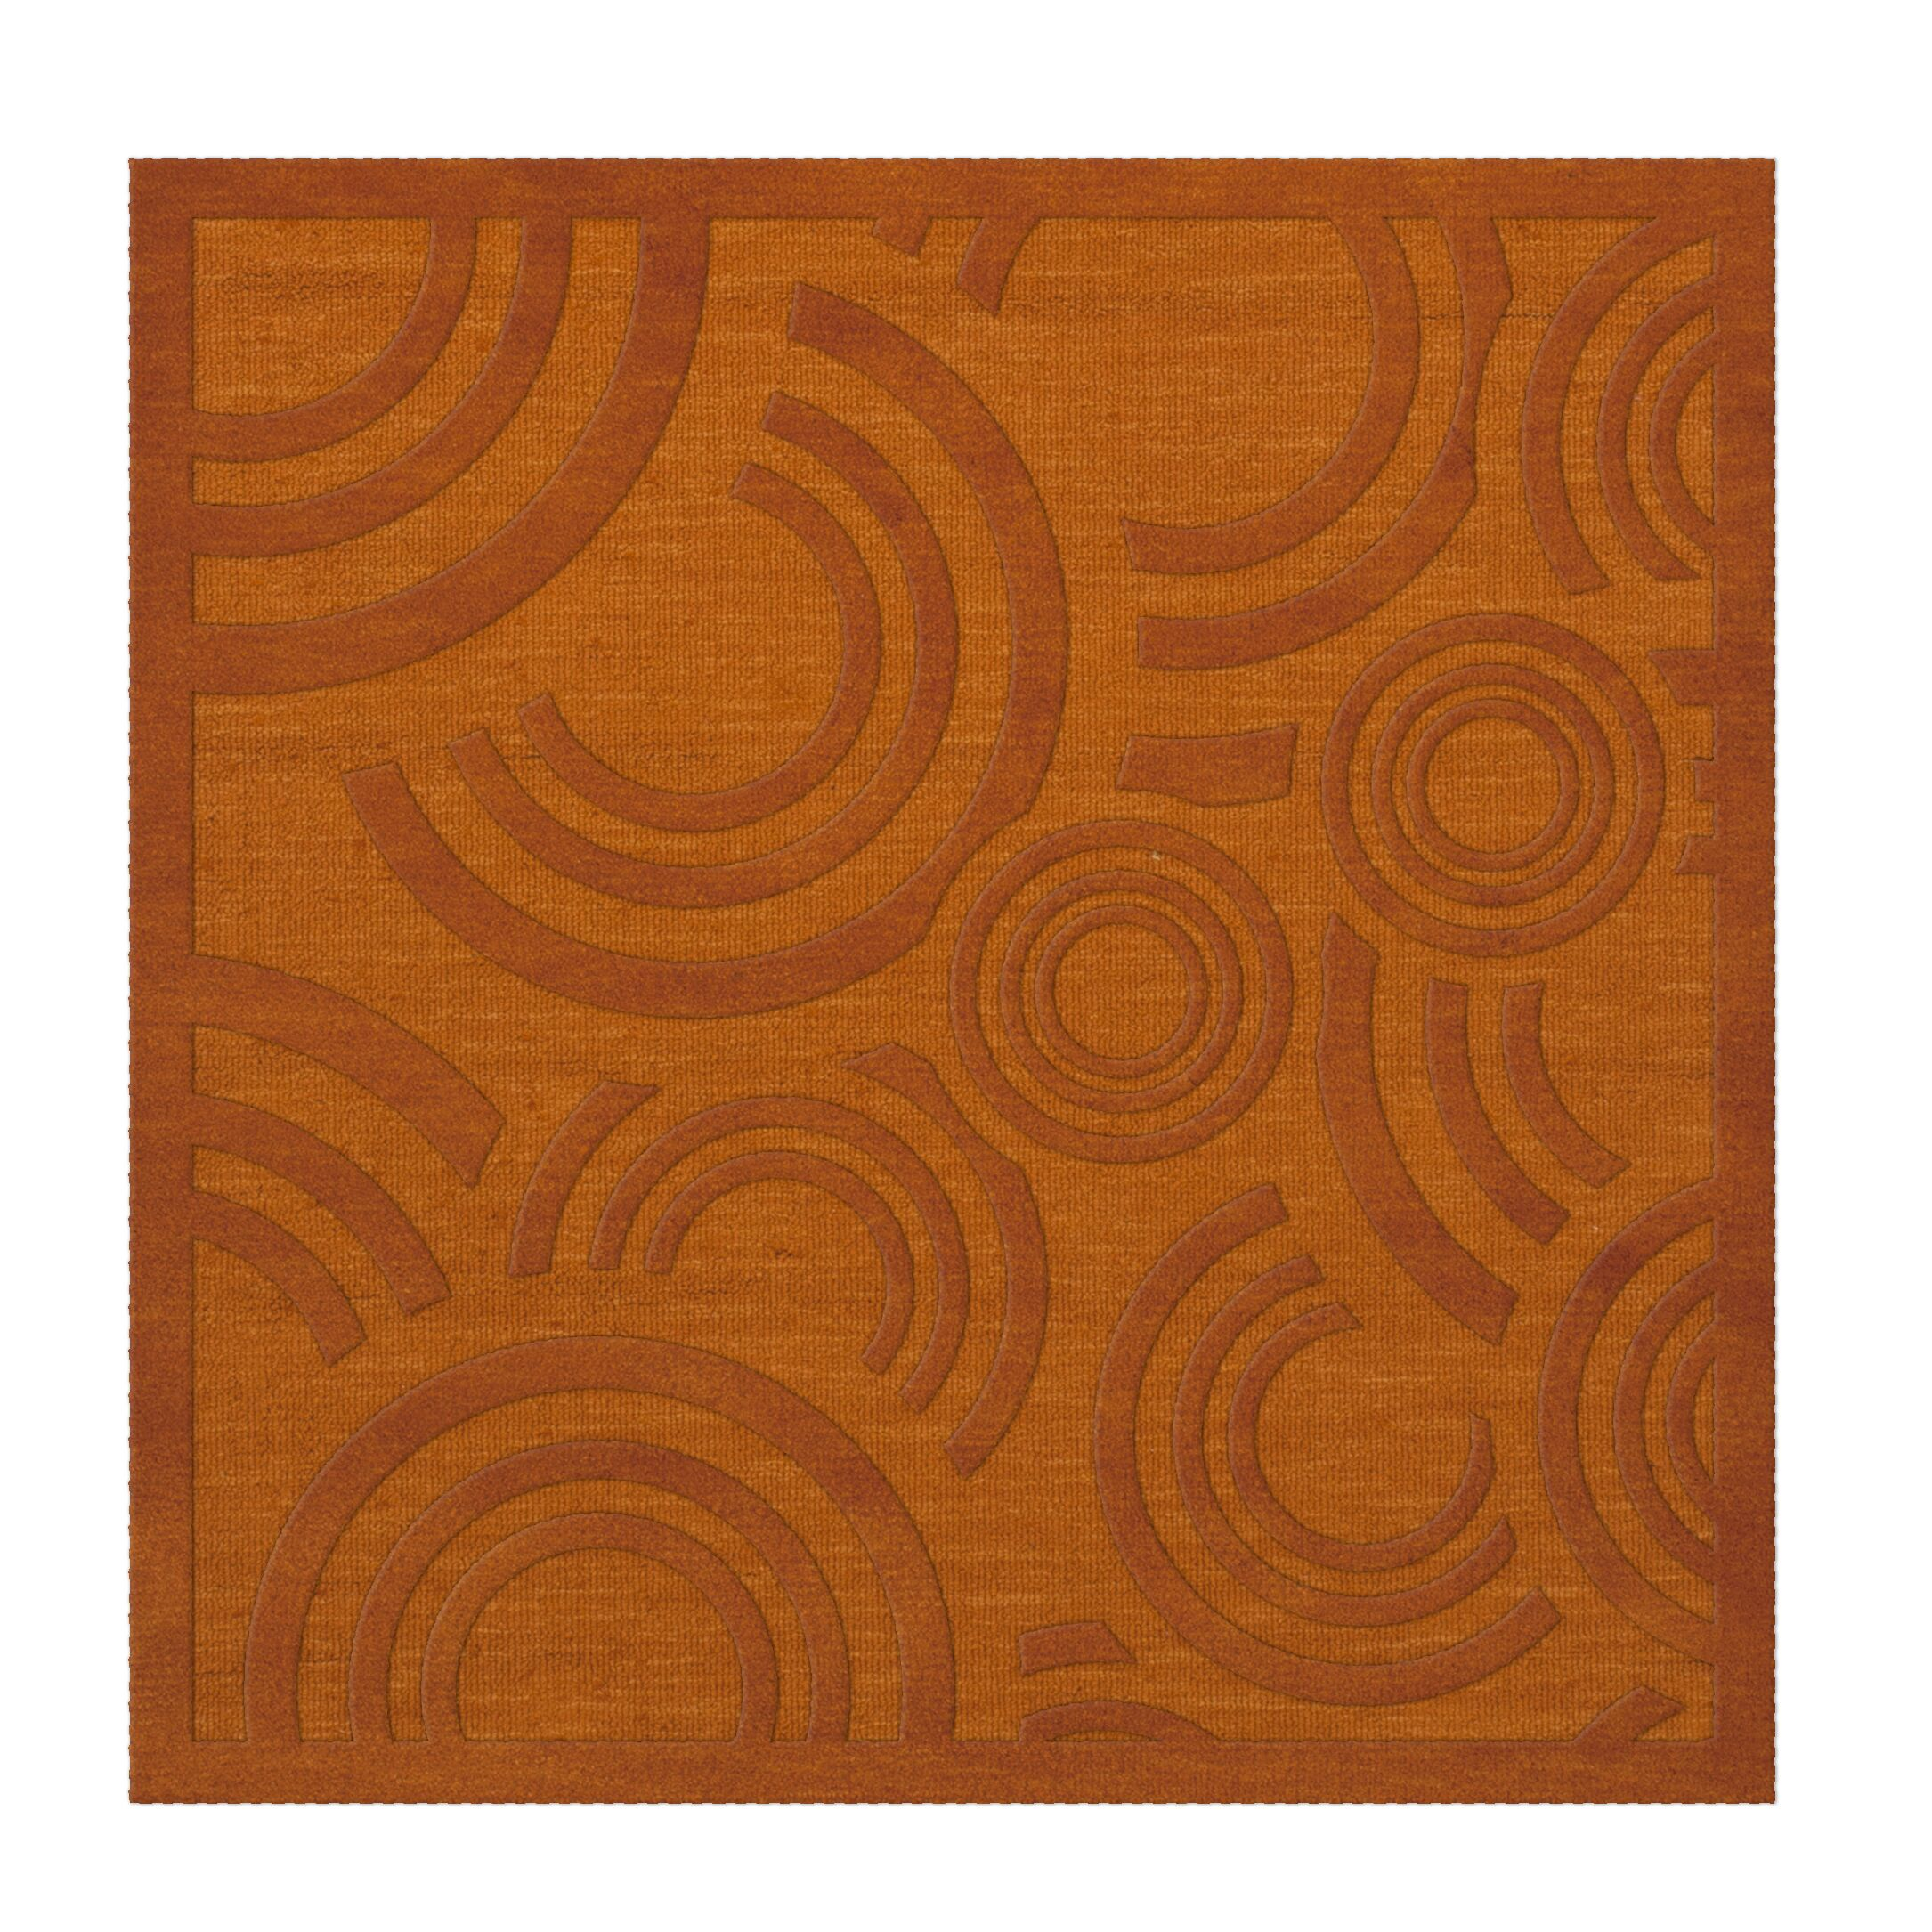 Dover Tufted Wool Orange Area Rug Rug Size: Square 10'